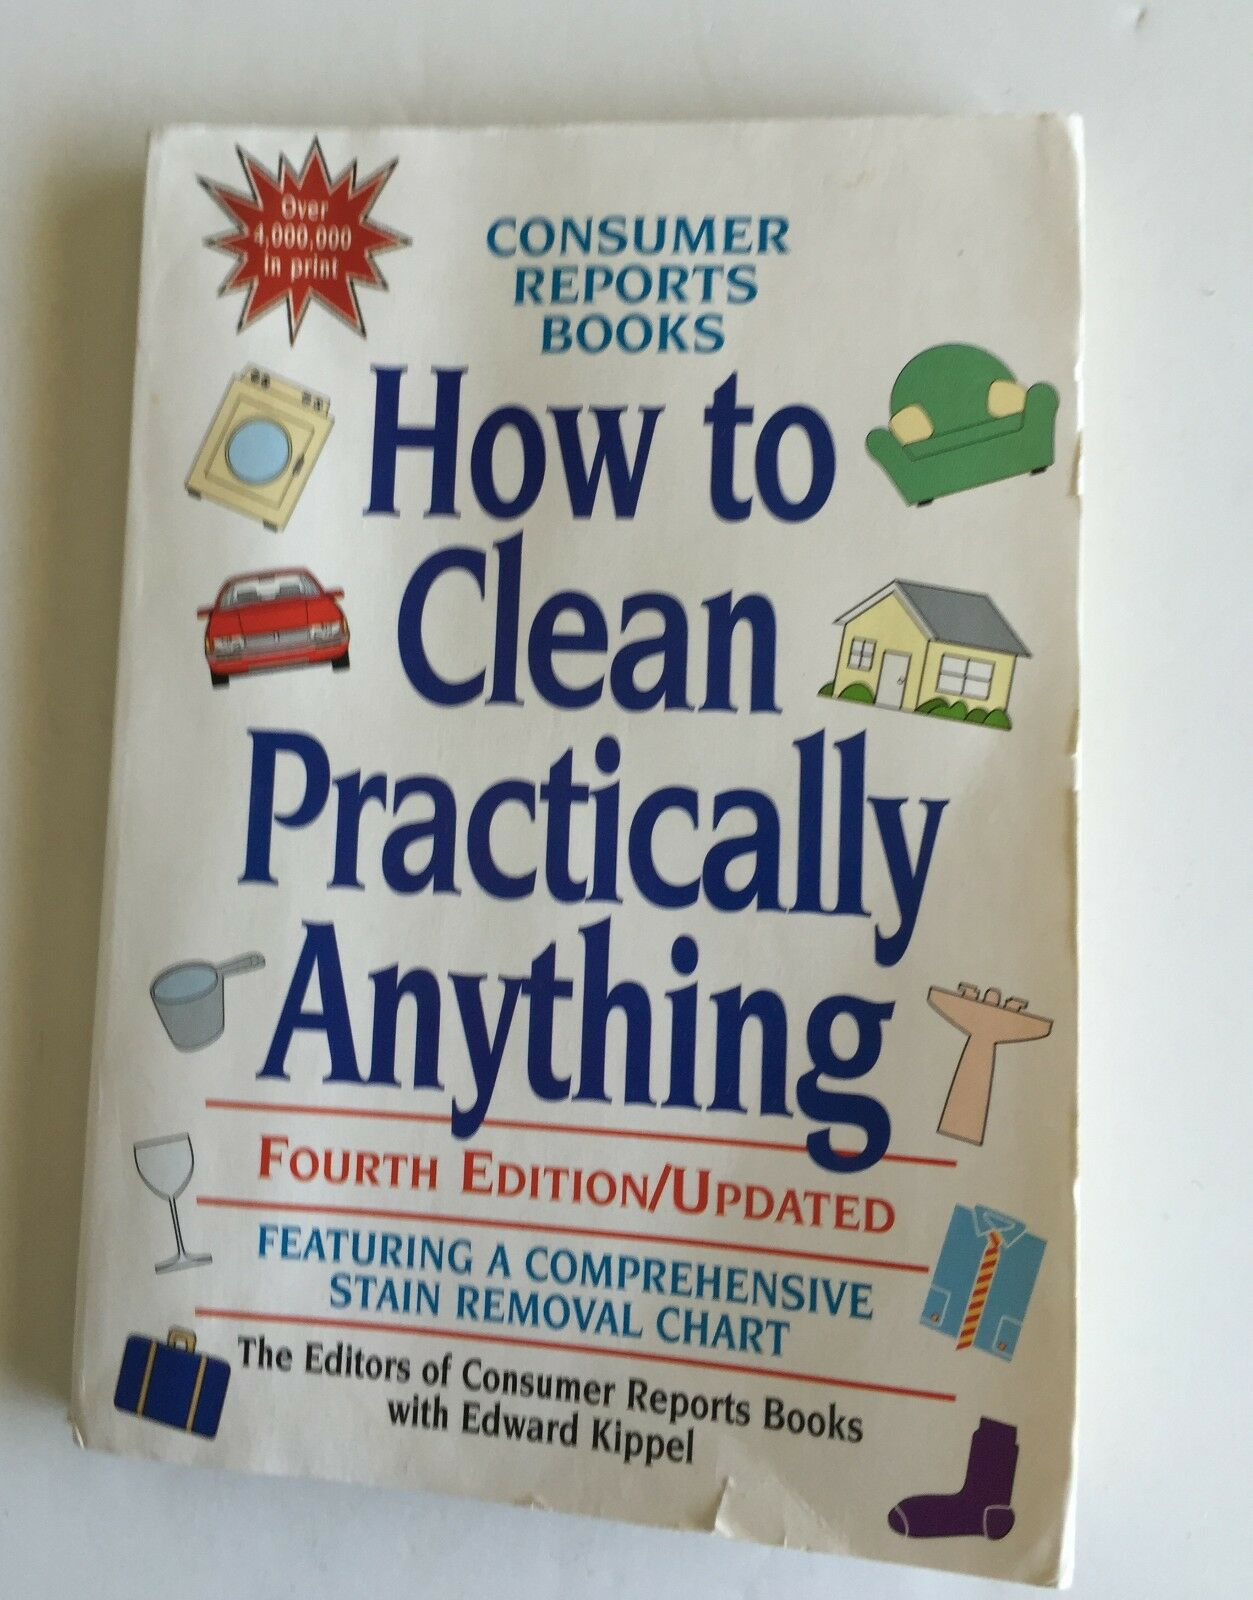 How to Clean Practically Anything by Consumer Reports Books Editors